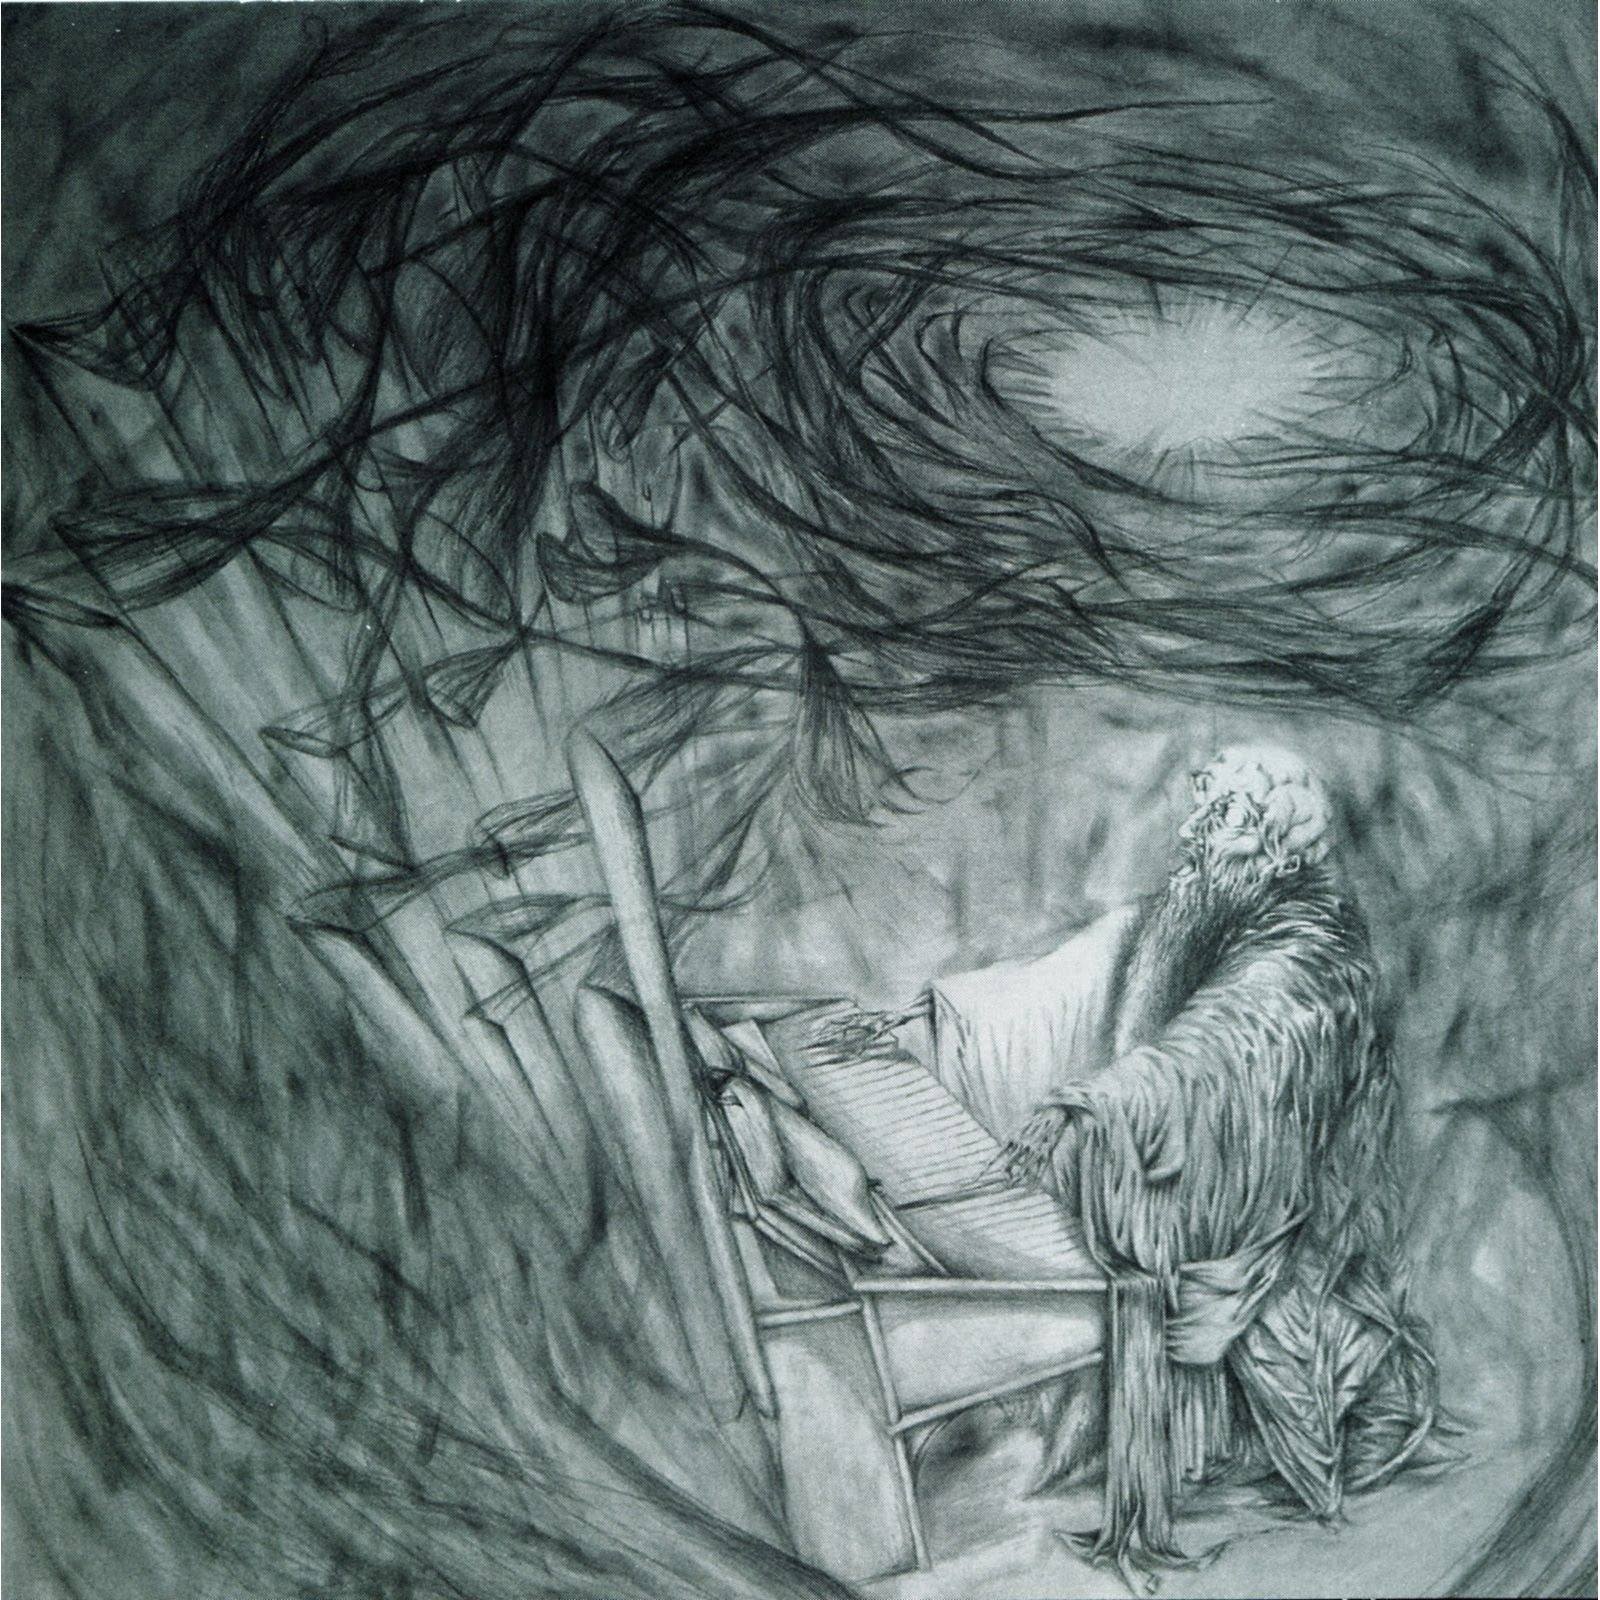 Review for Urfaust - Drei Rituale Jenseits des Kosmos